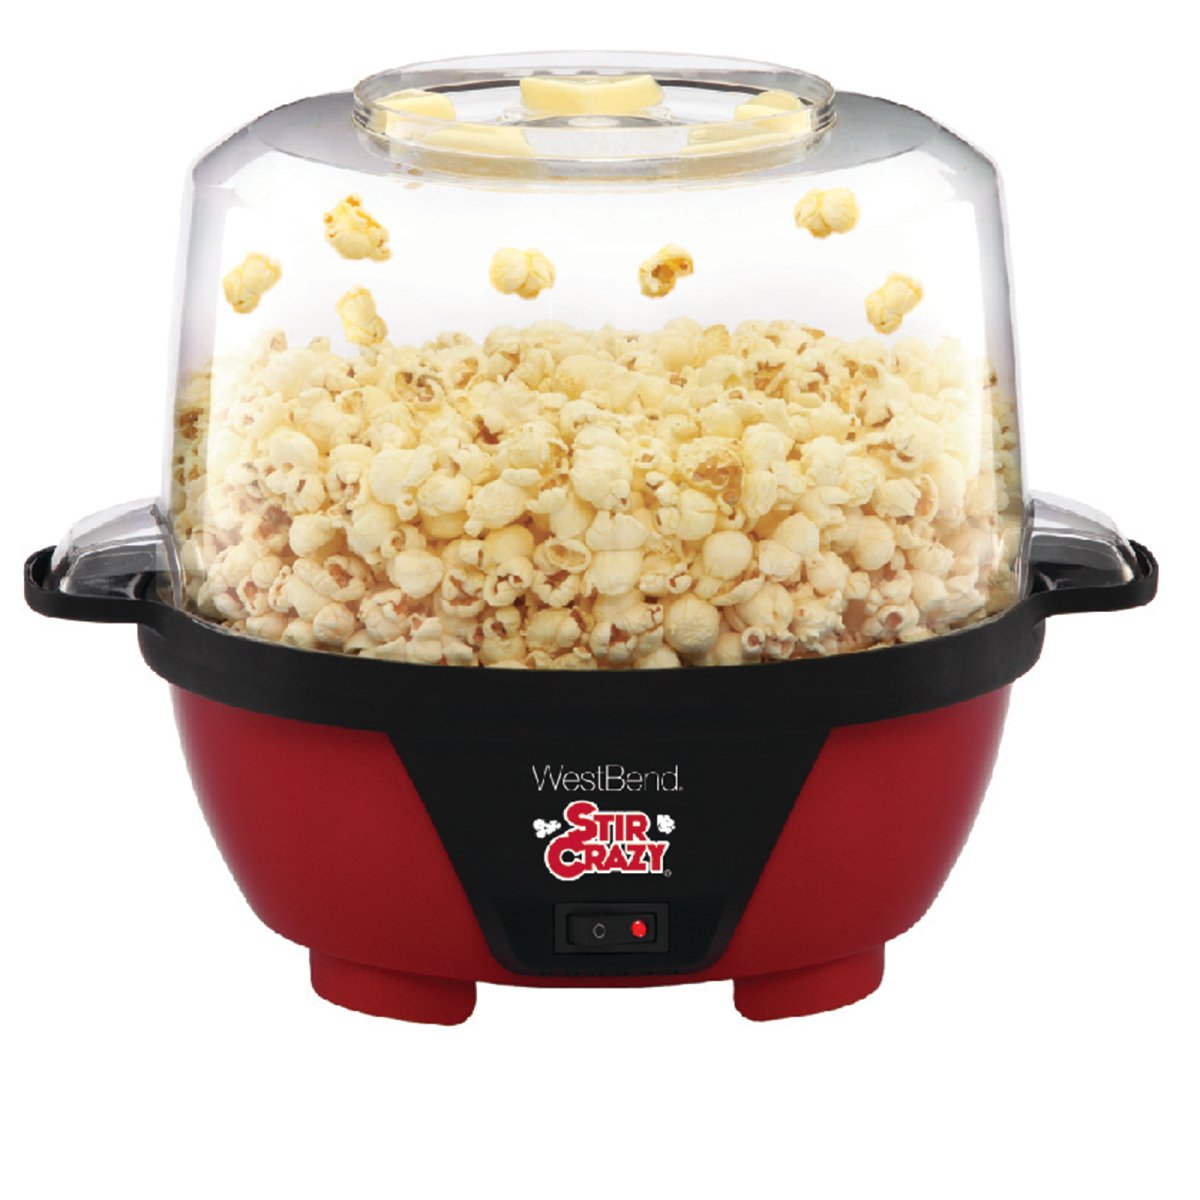 West Bend 82505 Stir Crazy Electric Hot Oil Popcorn Popper Machine with Stirring Rod Offers Large Lid for Serving Bowl and Convenient Storage, 6-Quarts, Red by West Bend (Image #1)